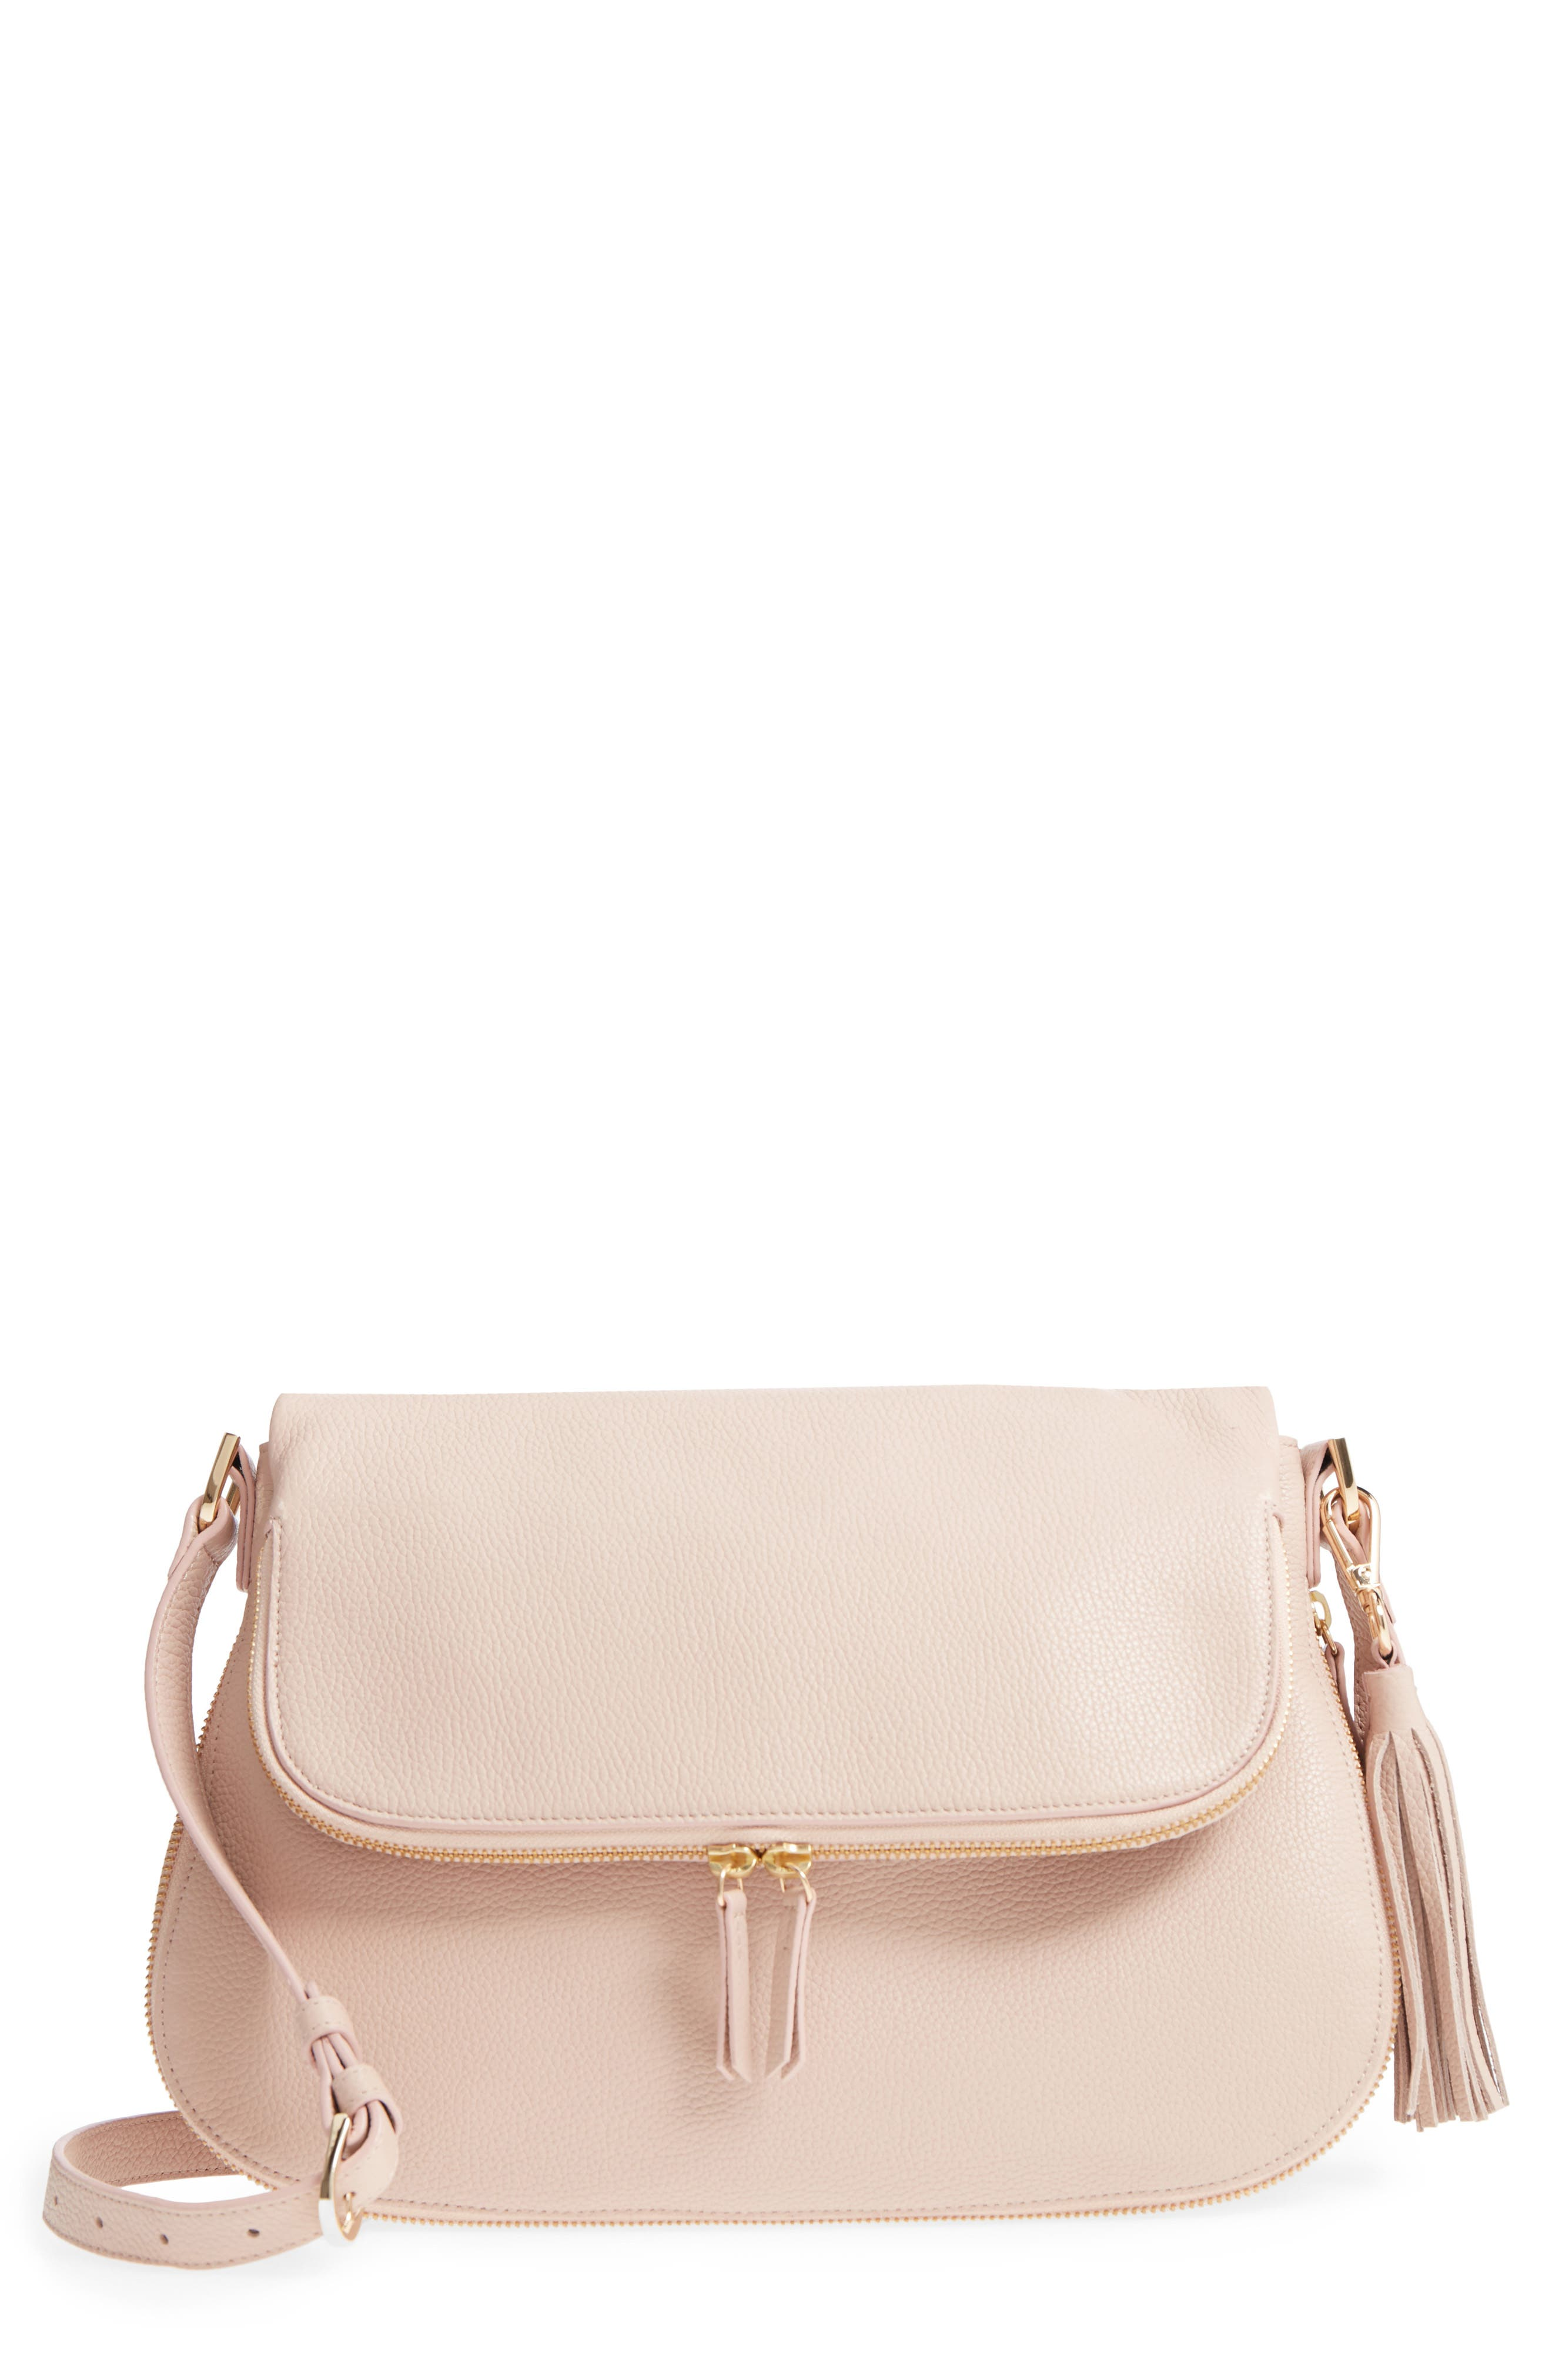 Kara Leather Expandable Crossbody Bag,                             Main thumbnail 1, color,                             PINK ROSECLOUD